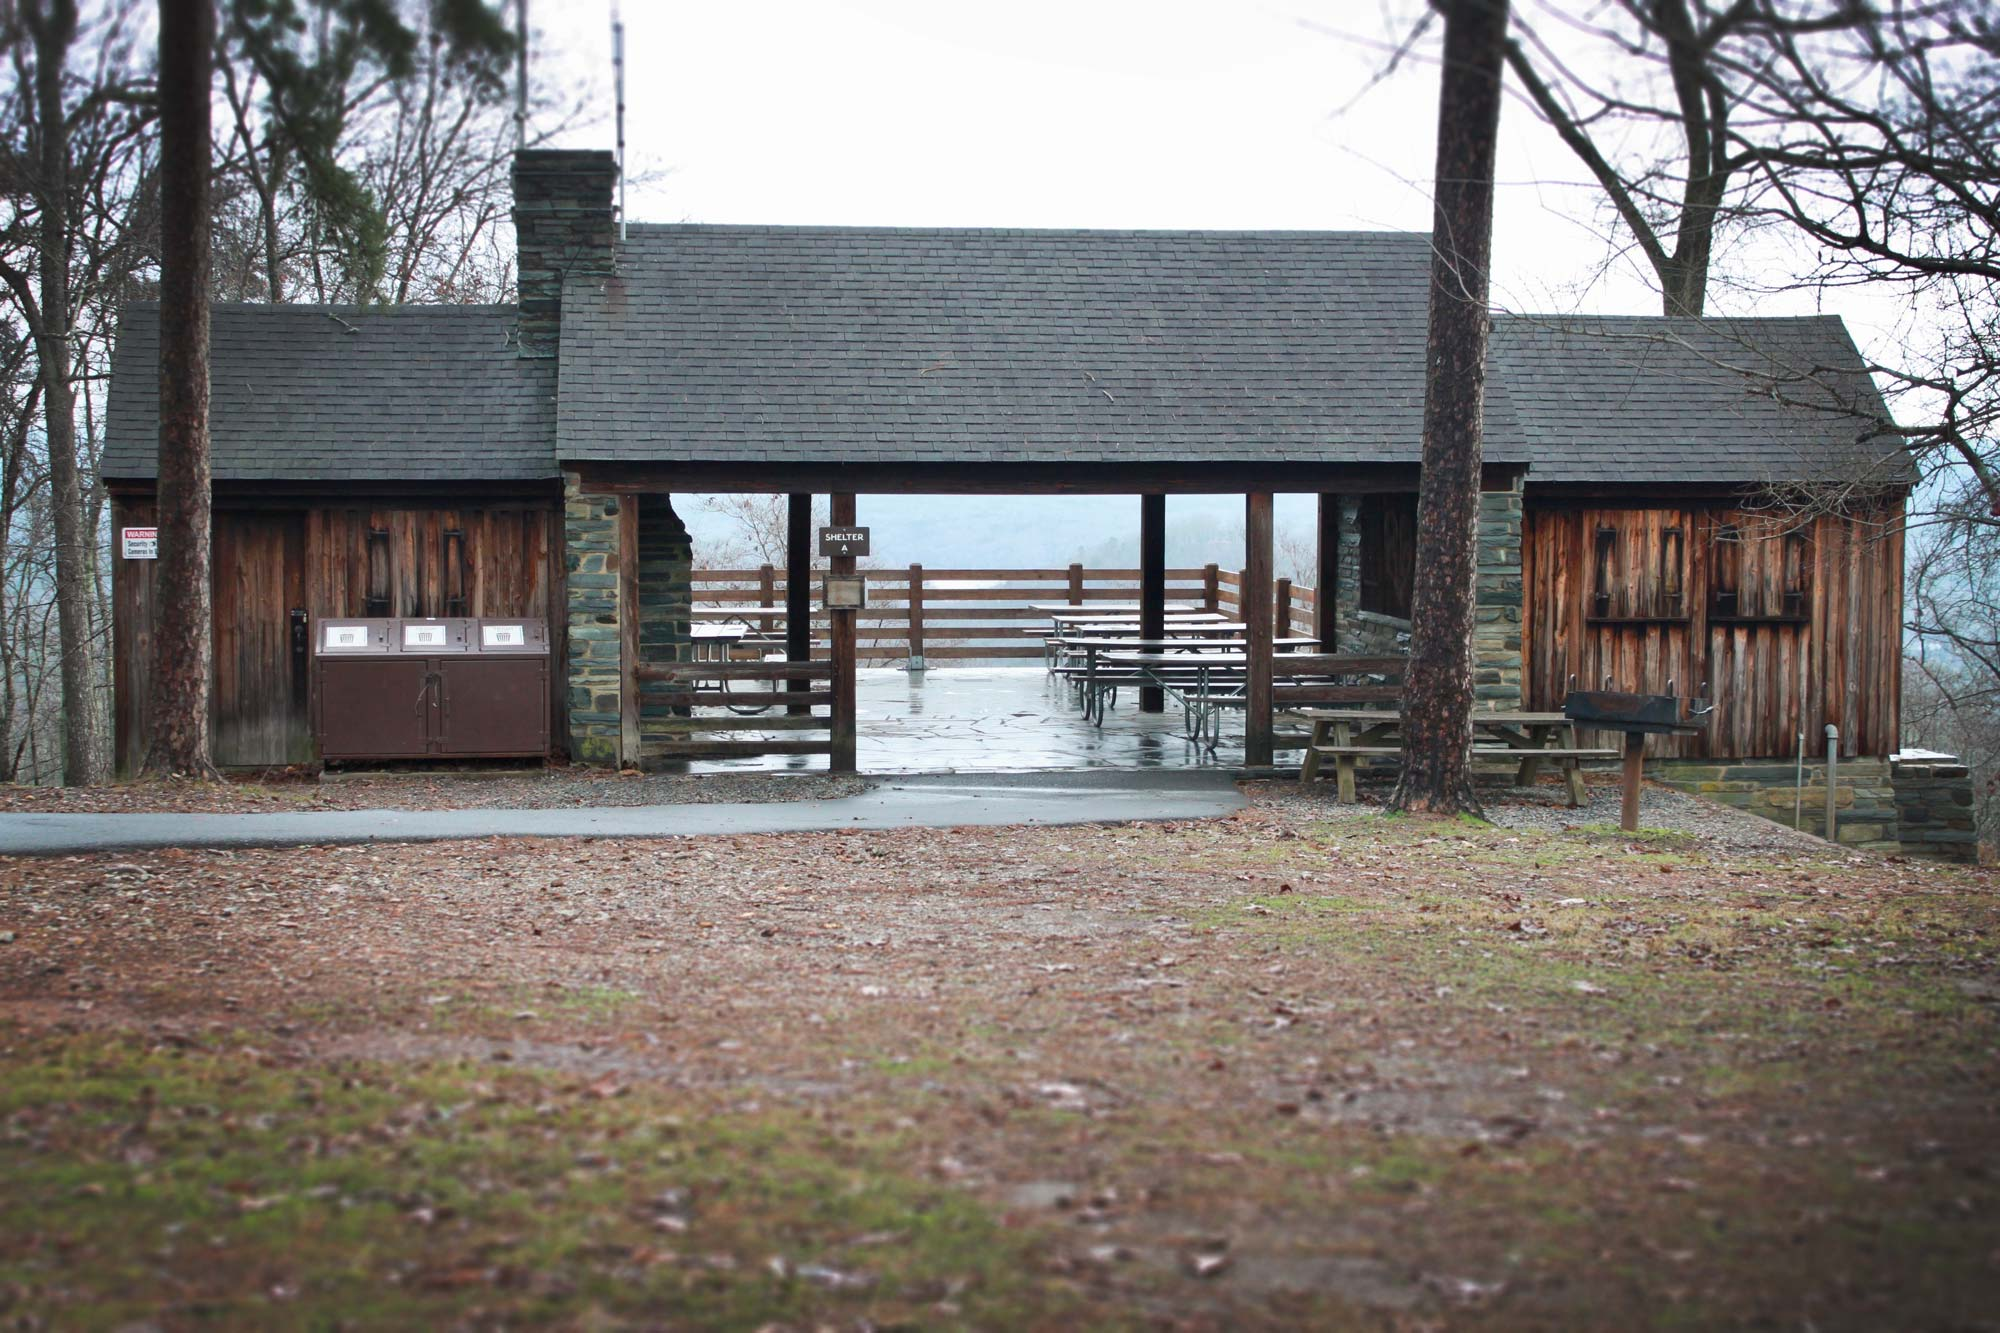 Picnic shelter at the top of Morrow Mountain  in Morrow Mountain State Park, North Carolina